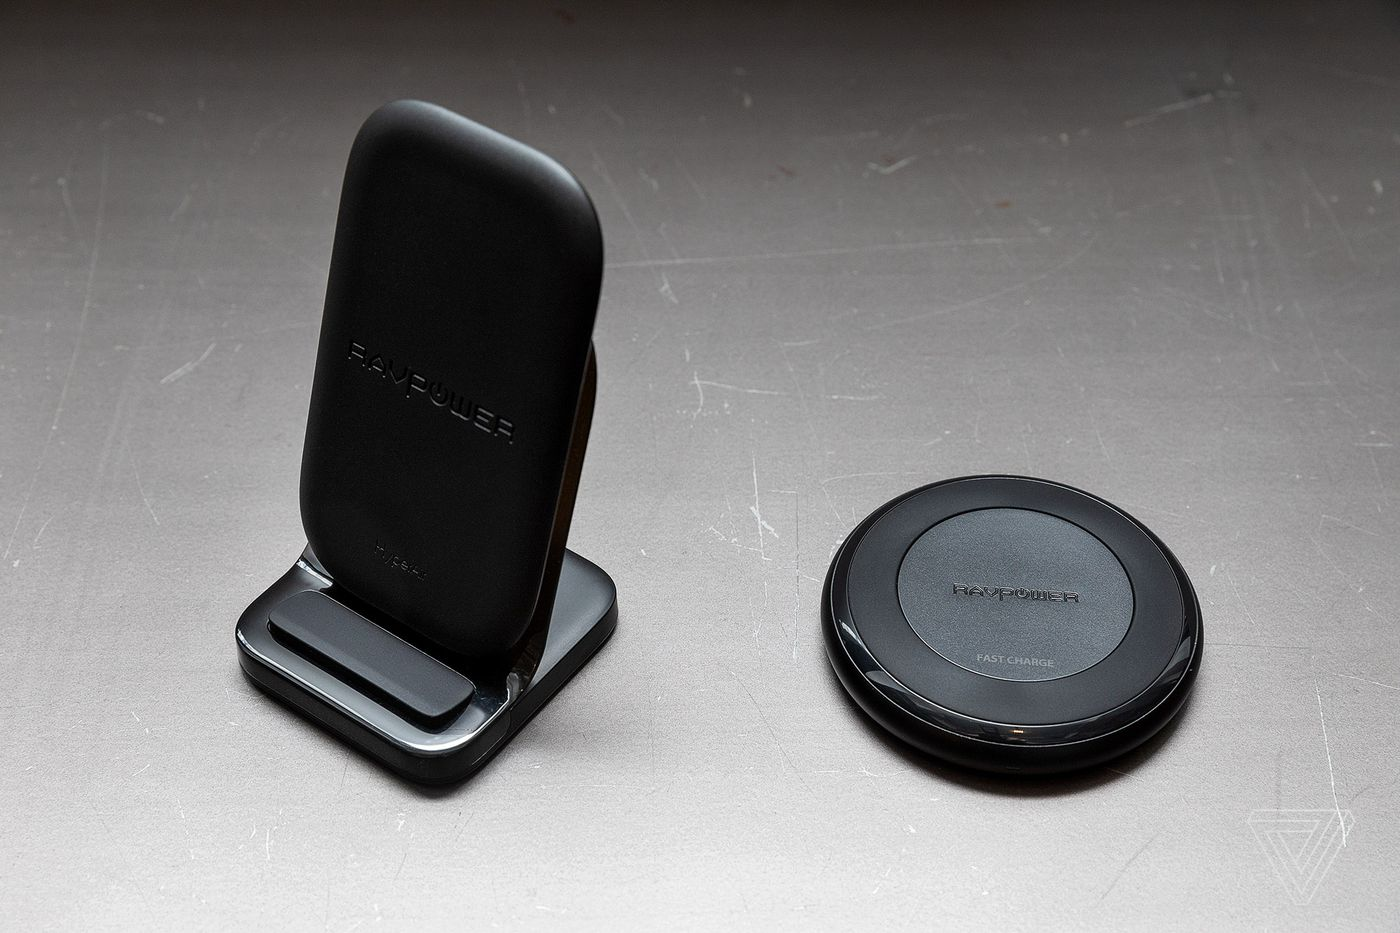 The best wireless charger to buy right now - The Verge